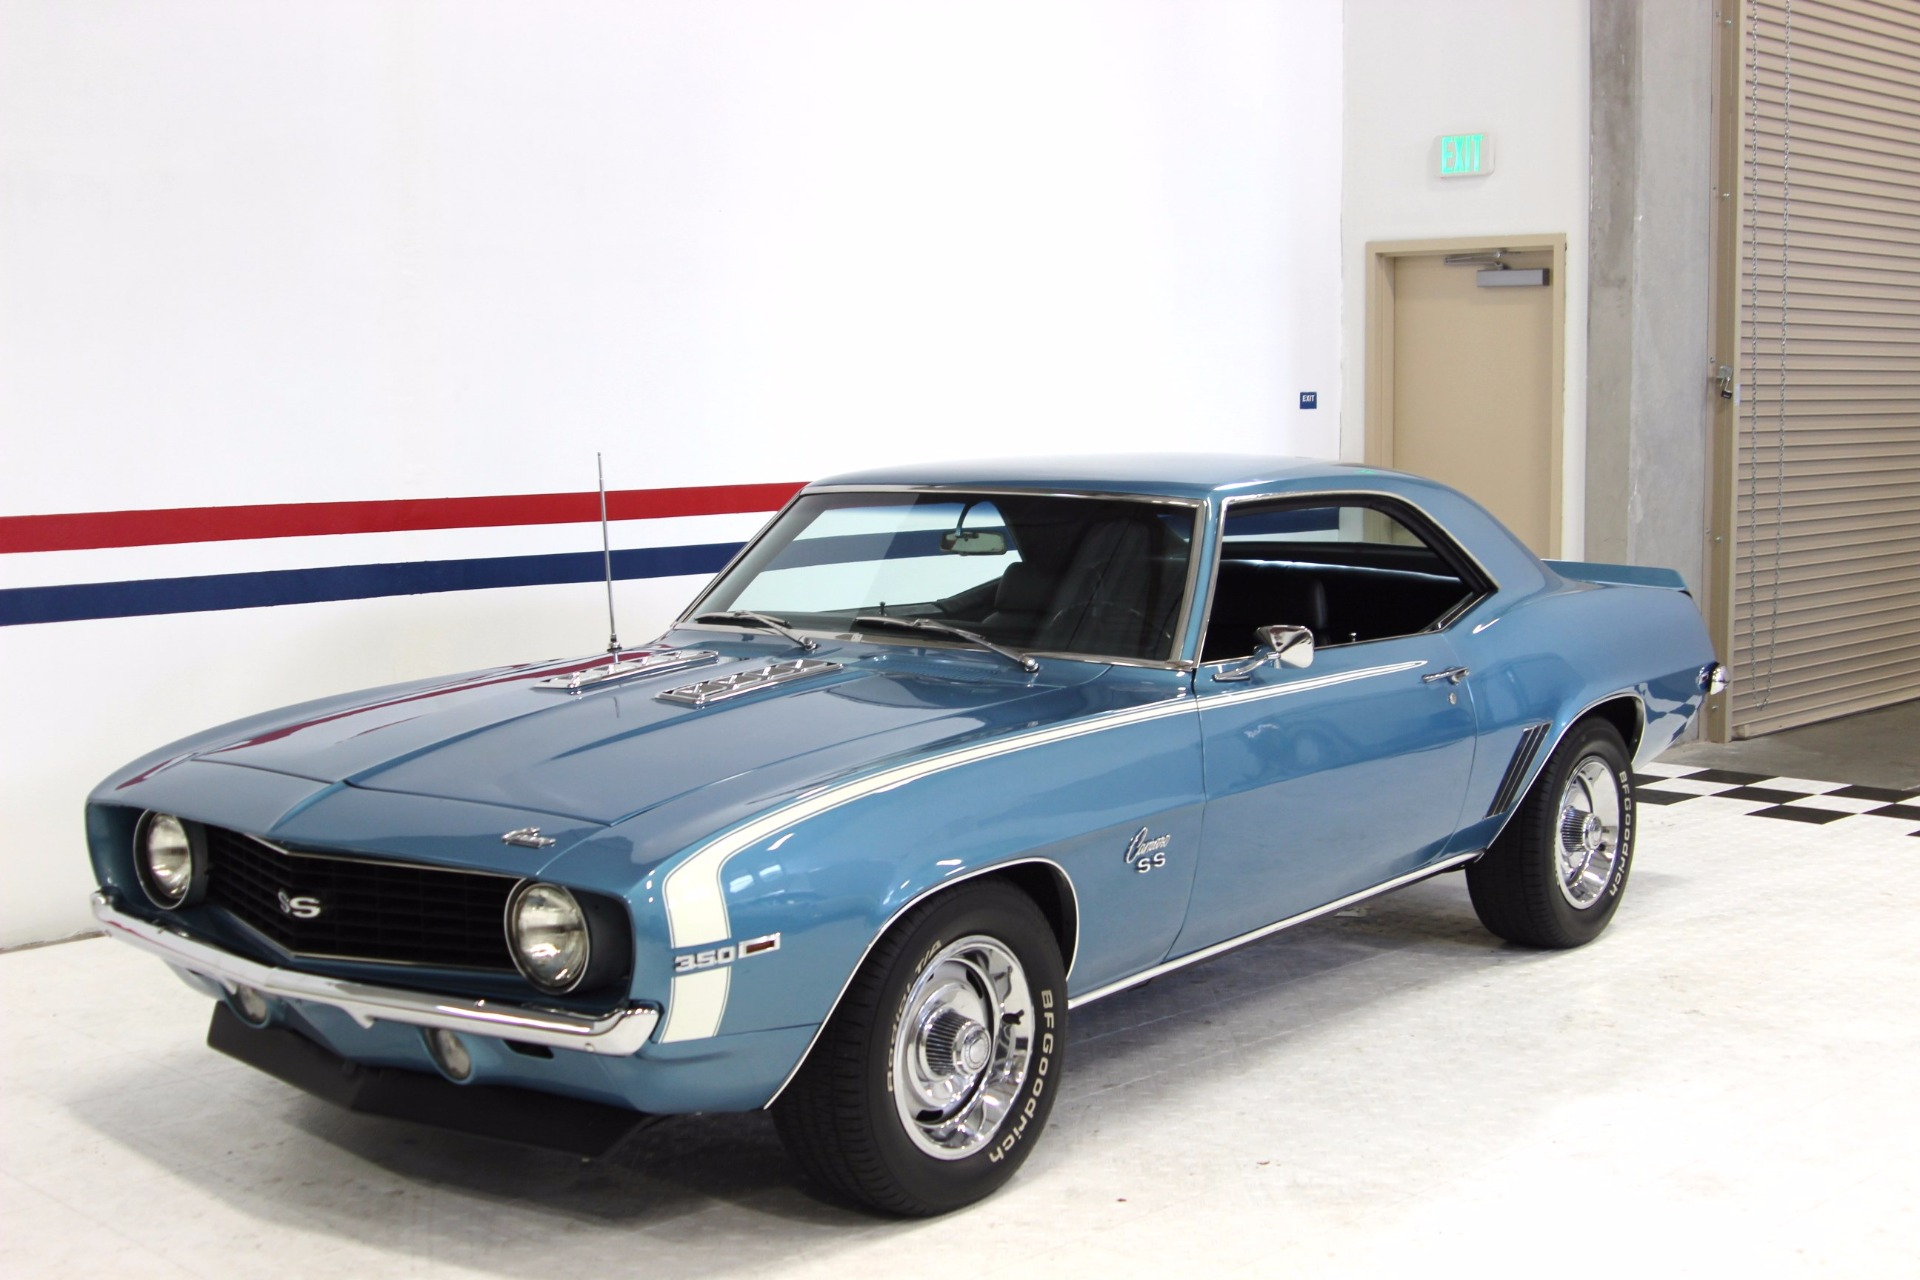 West Coast Auto Sales >> 1969 Chevrolet Camaro SS Stock # 16120 for sale near San Ramon, CA | CA Chevrolet Dealer